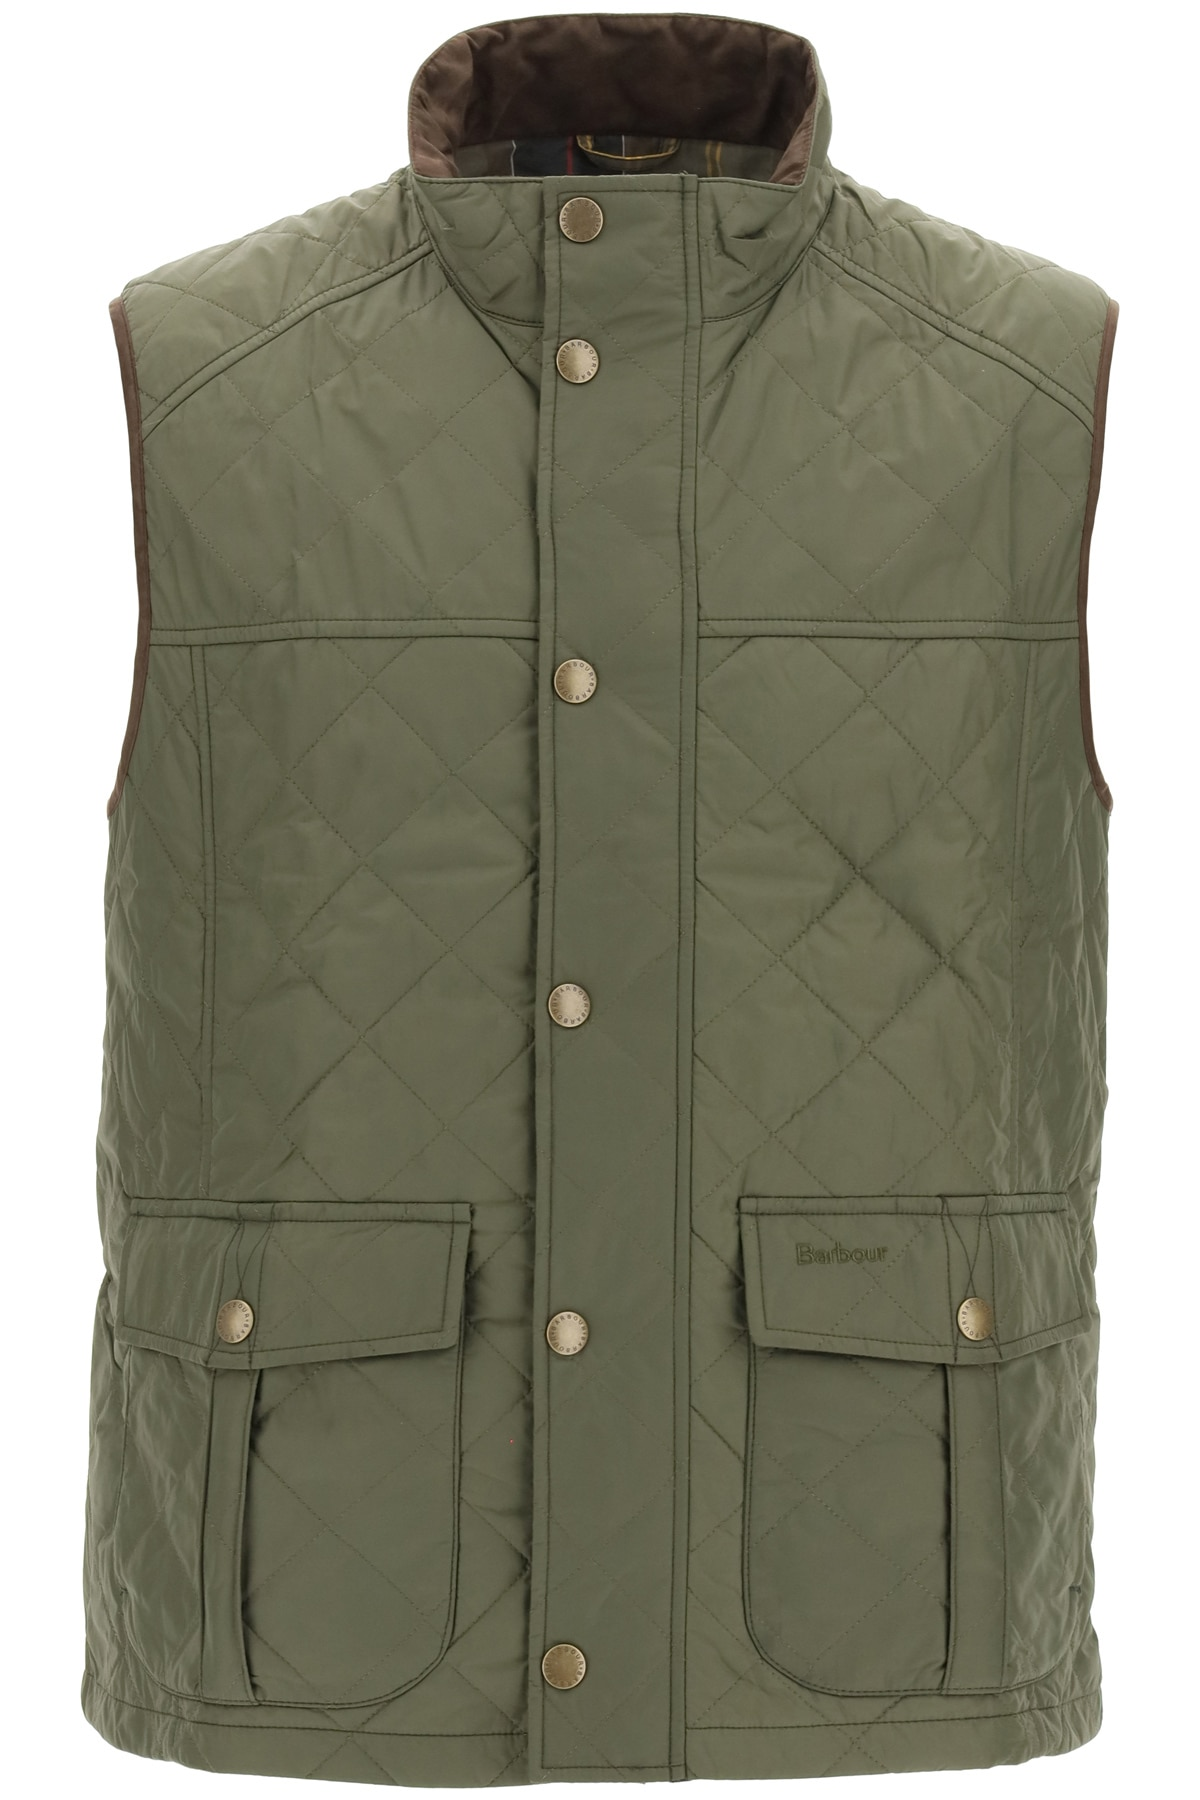 BARBOUR EXPLORER VEST S Green Technical